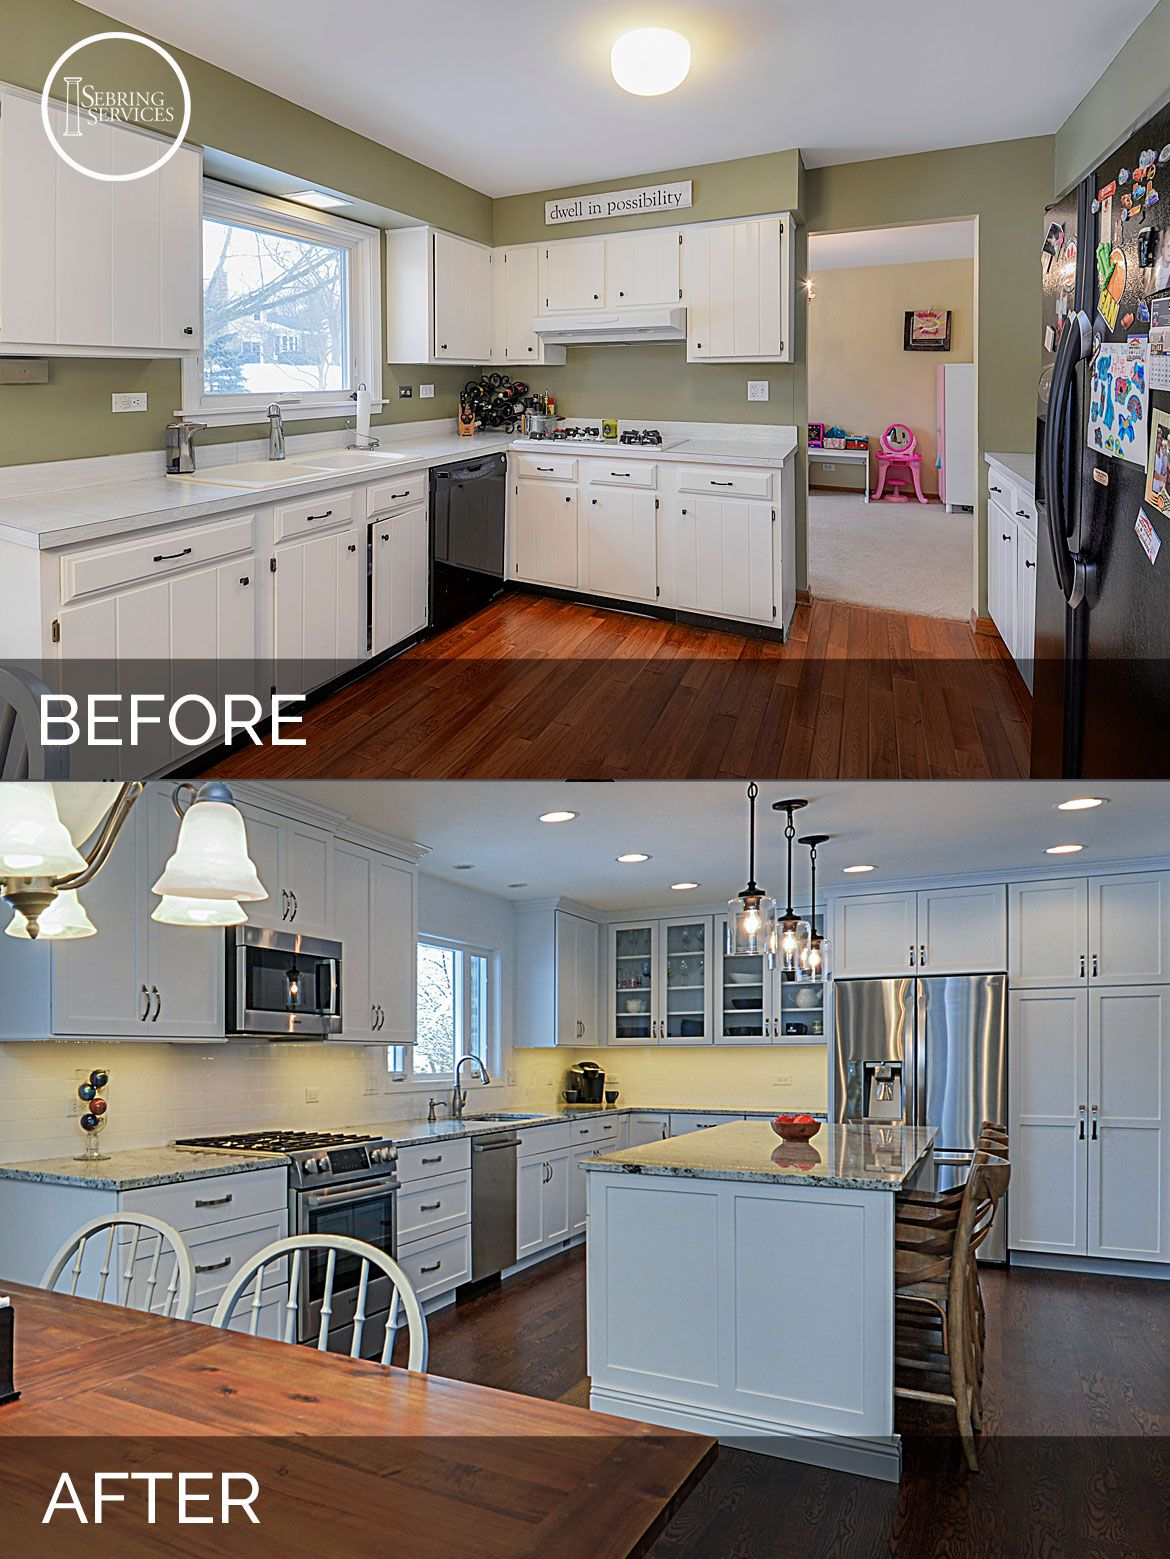 Ryan & Missy's Kitchen Before & After Pictures